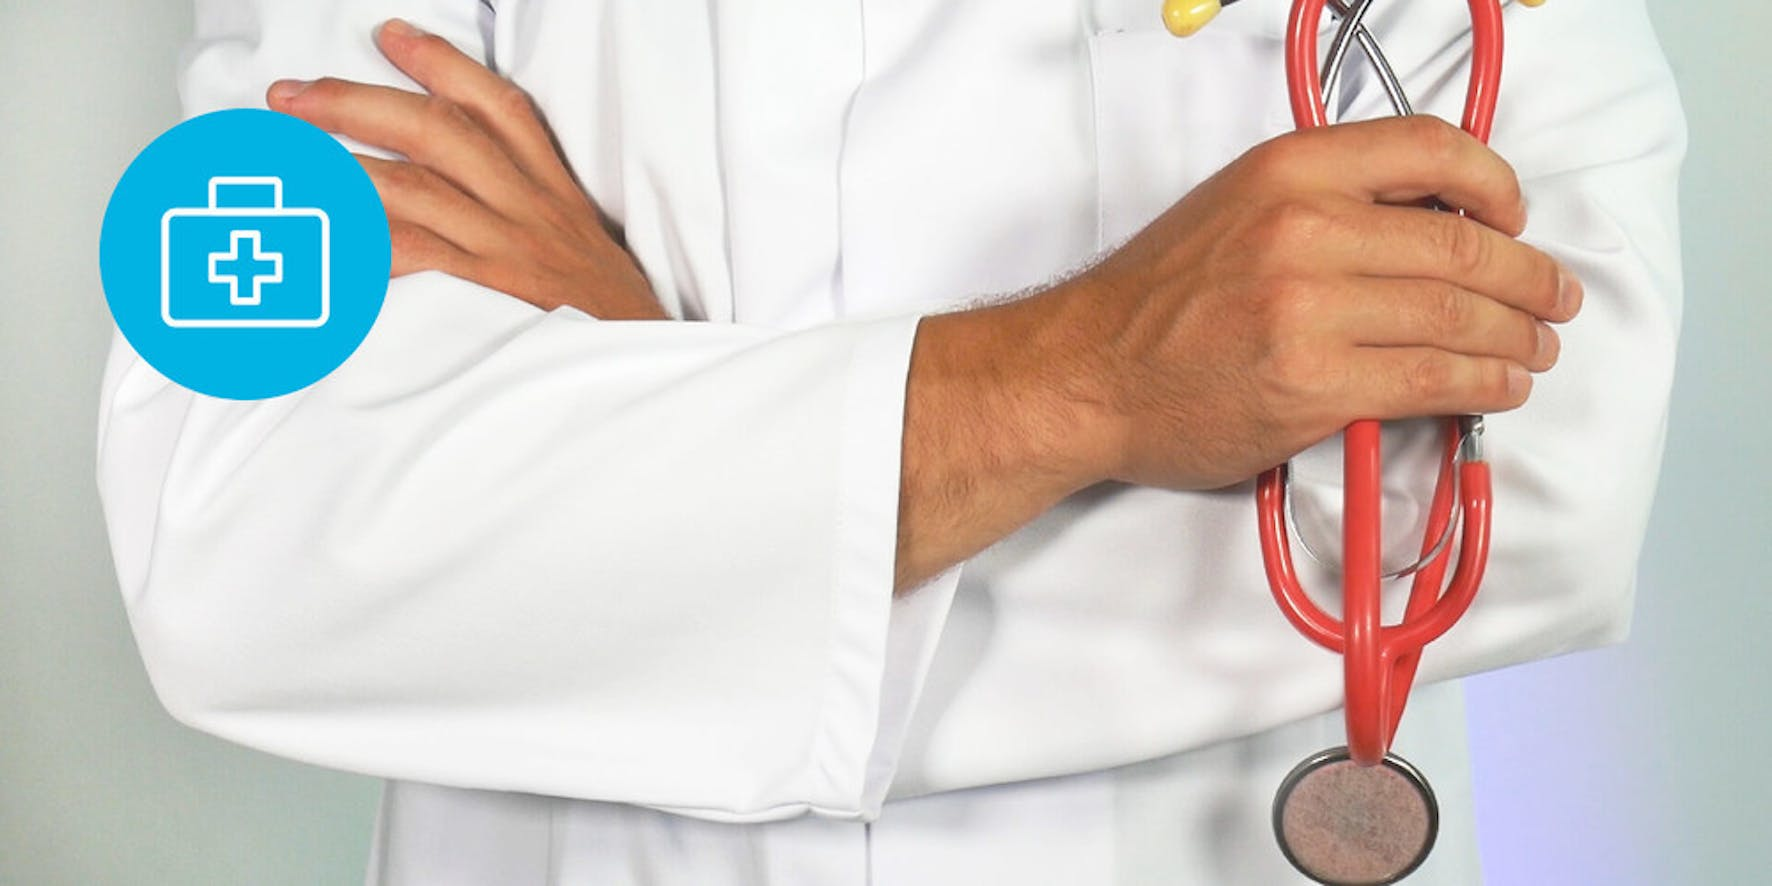 Doctor wearing a white coat and holding a red stethoscope